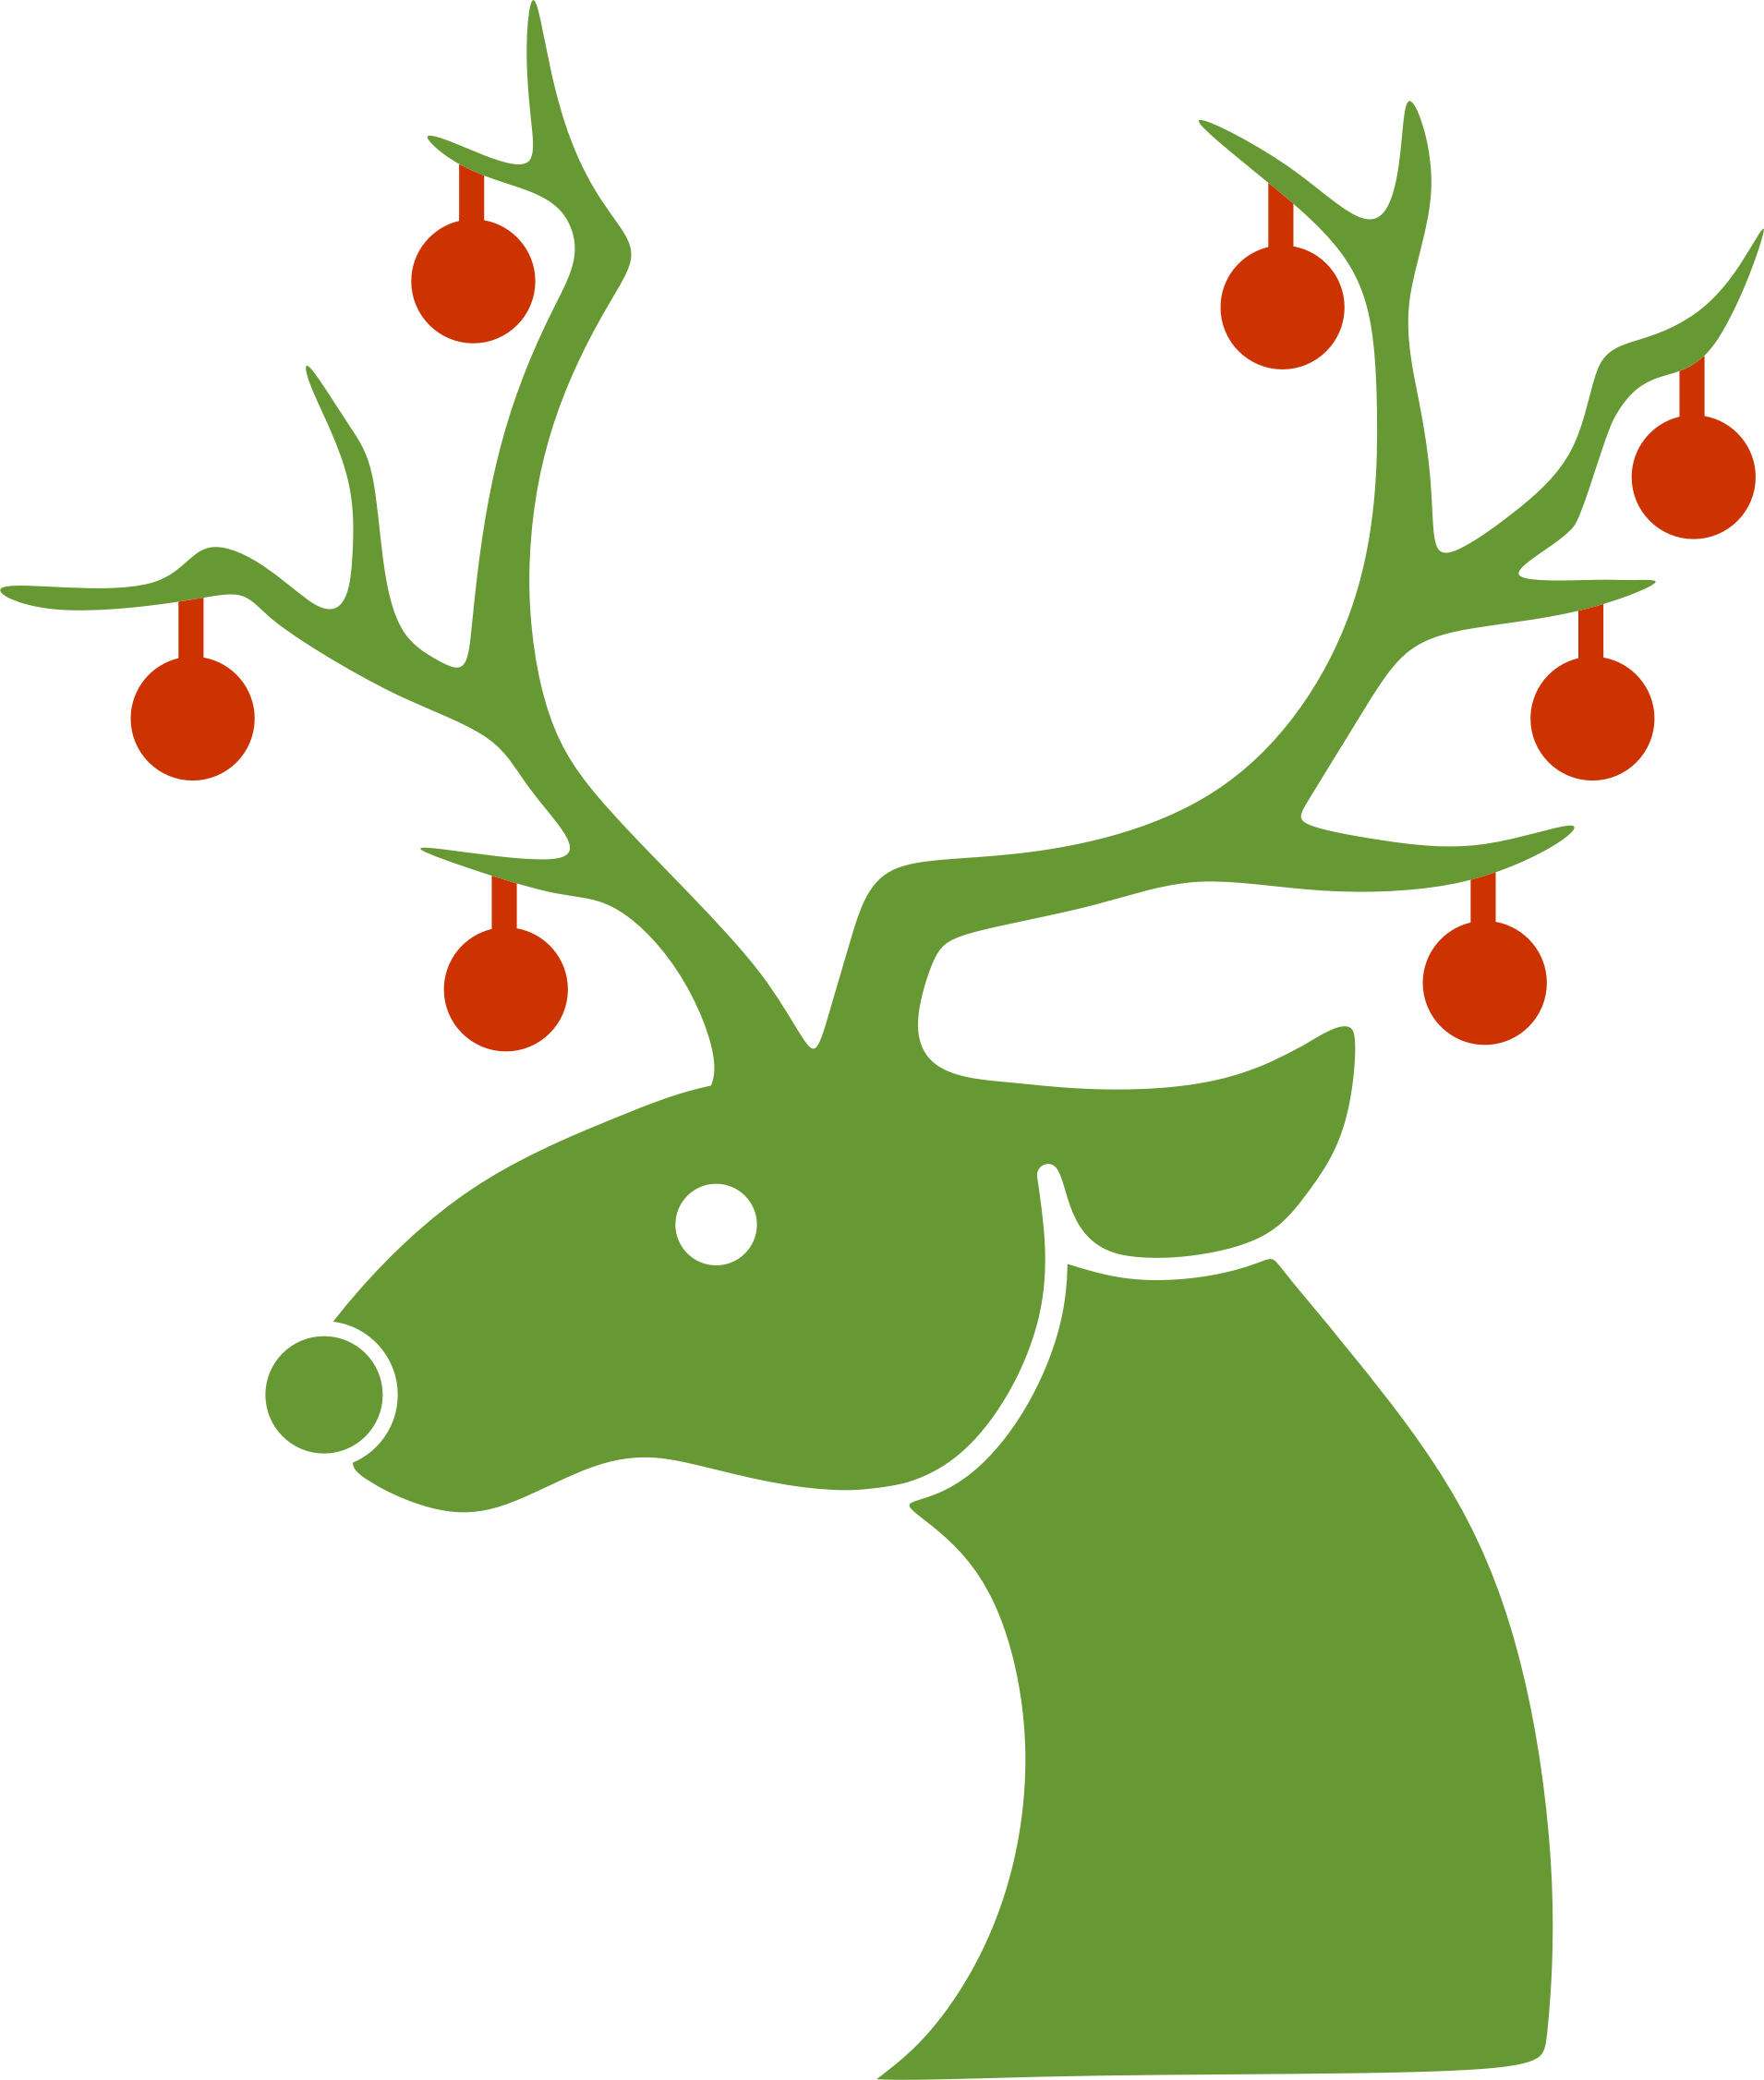 Christmas deer clipart banner black and white stock Clipart - Christmas Reindeer banner black and white stock